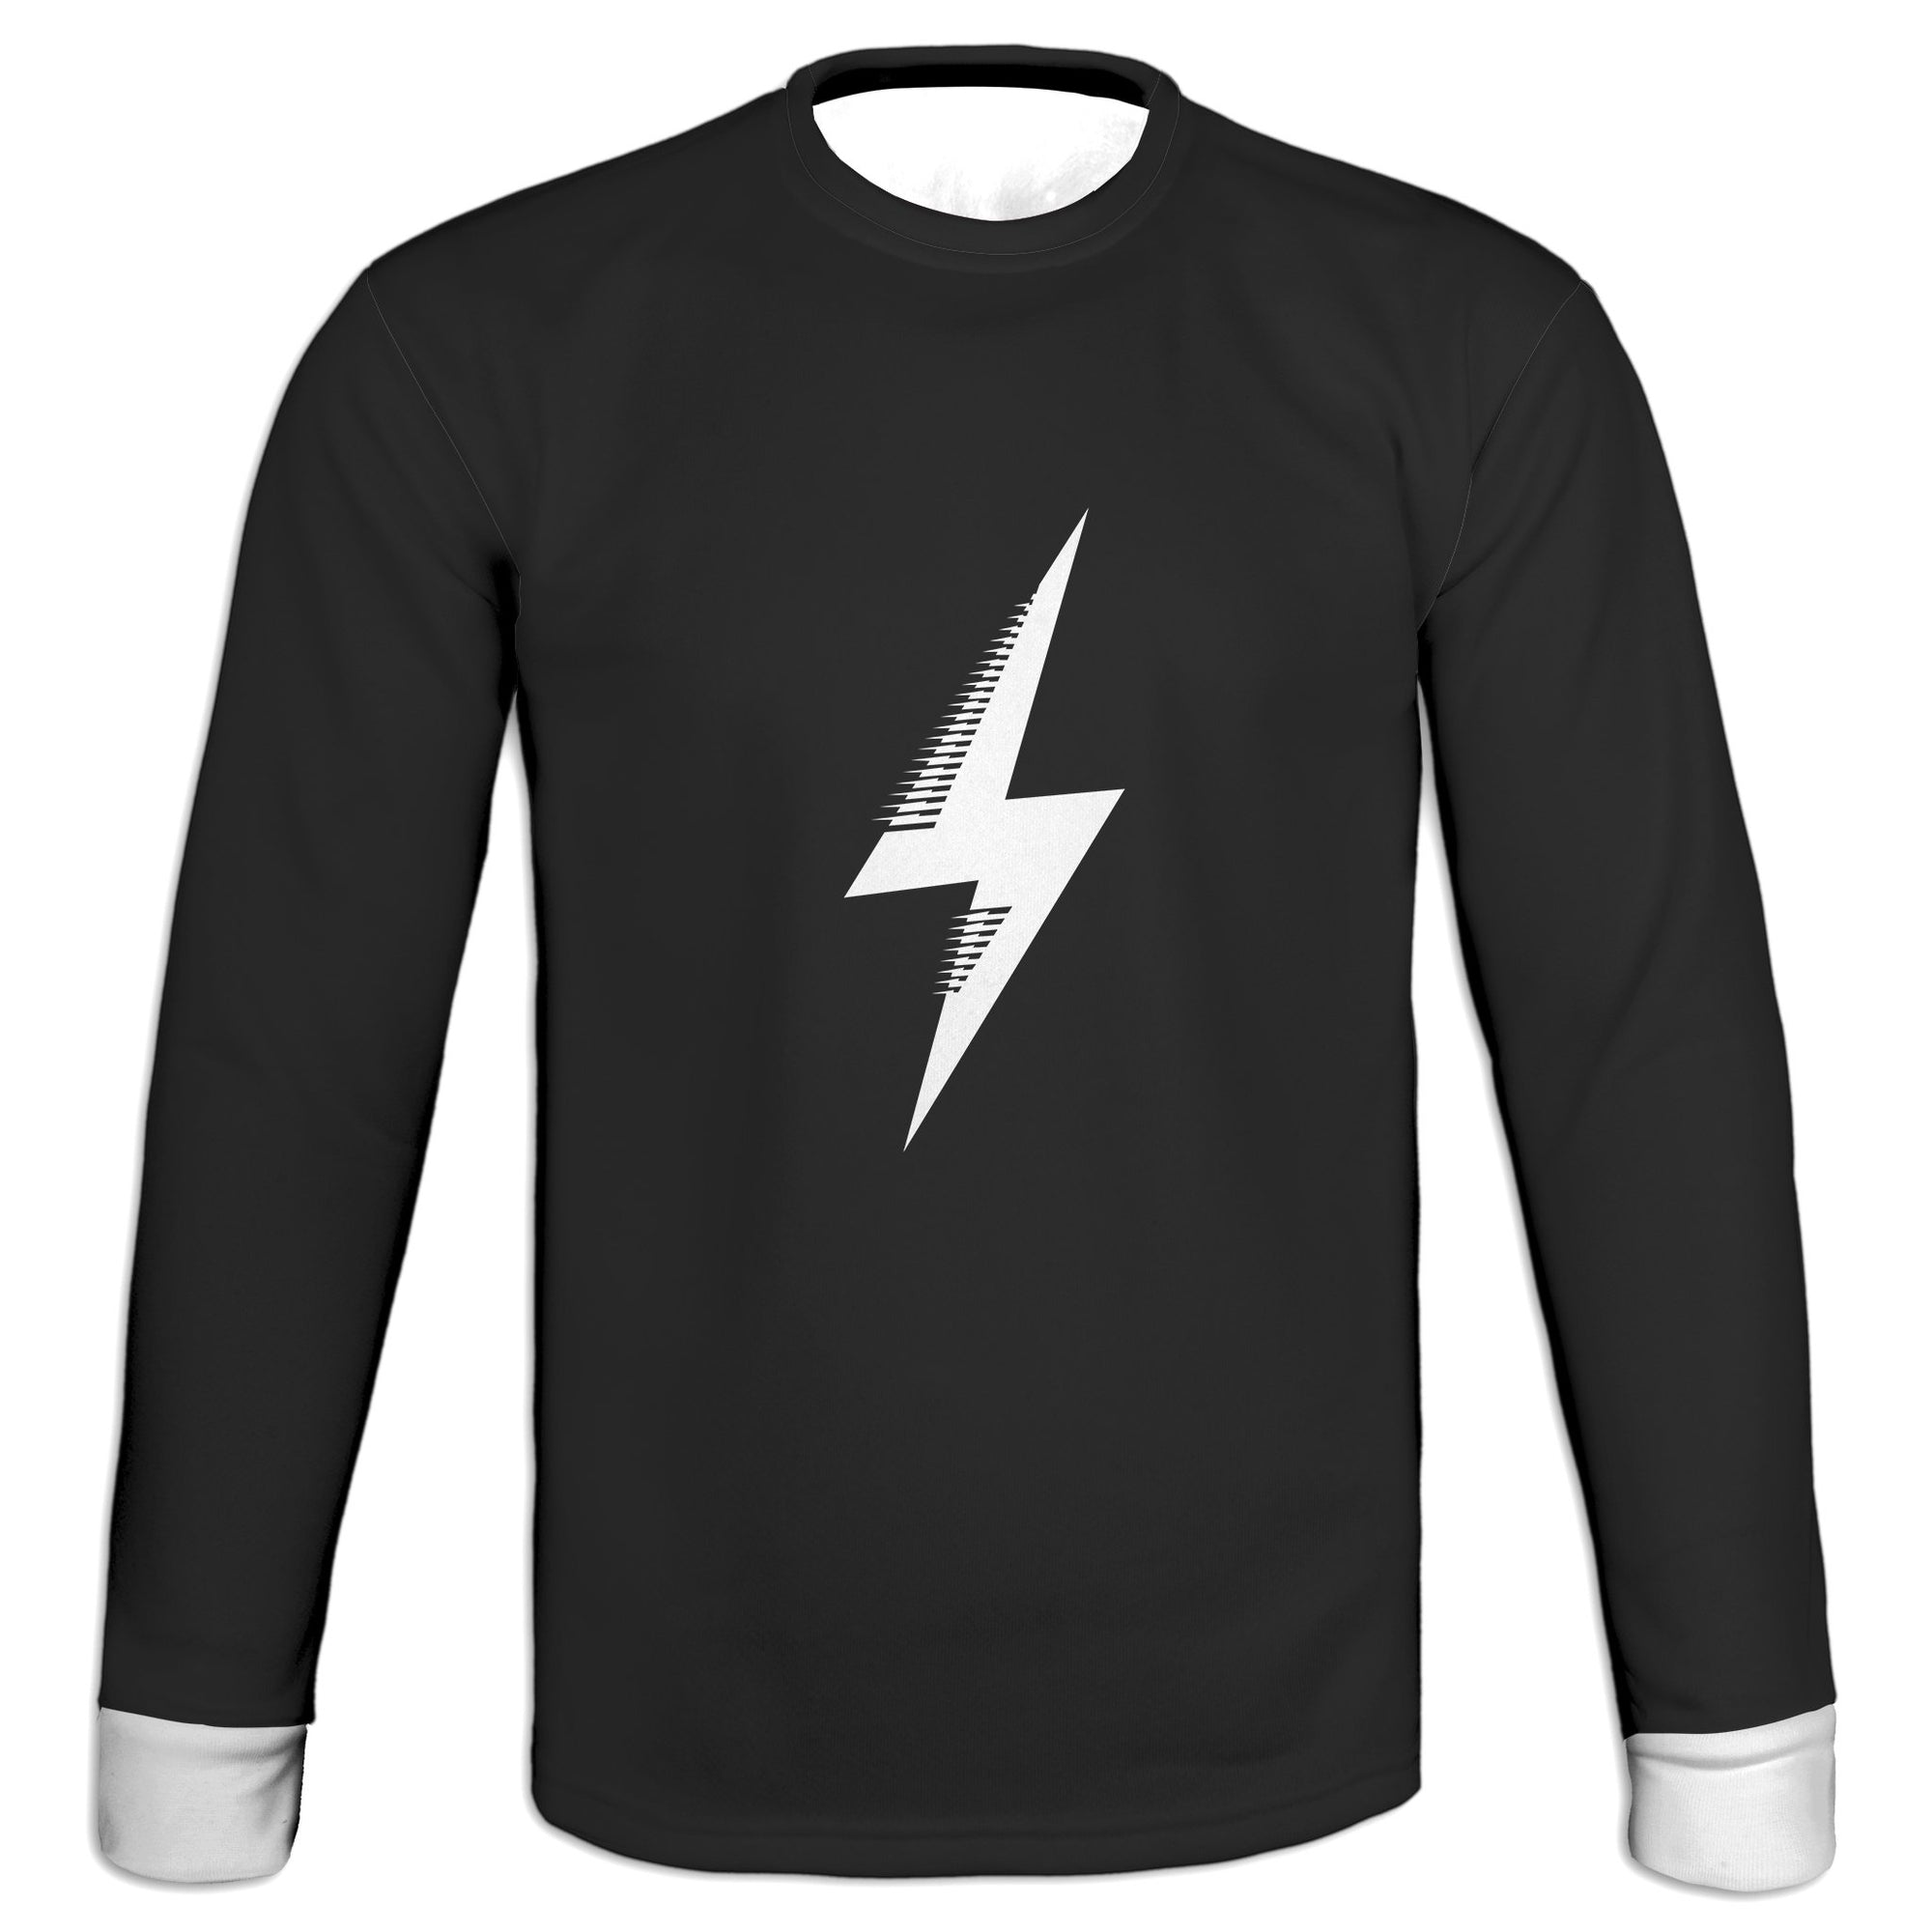 Blackout Sweatshirt | flashgordonshop.com